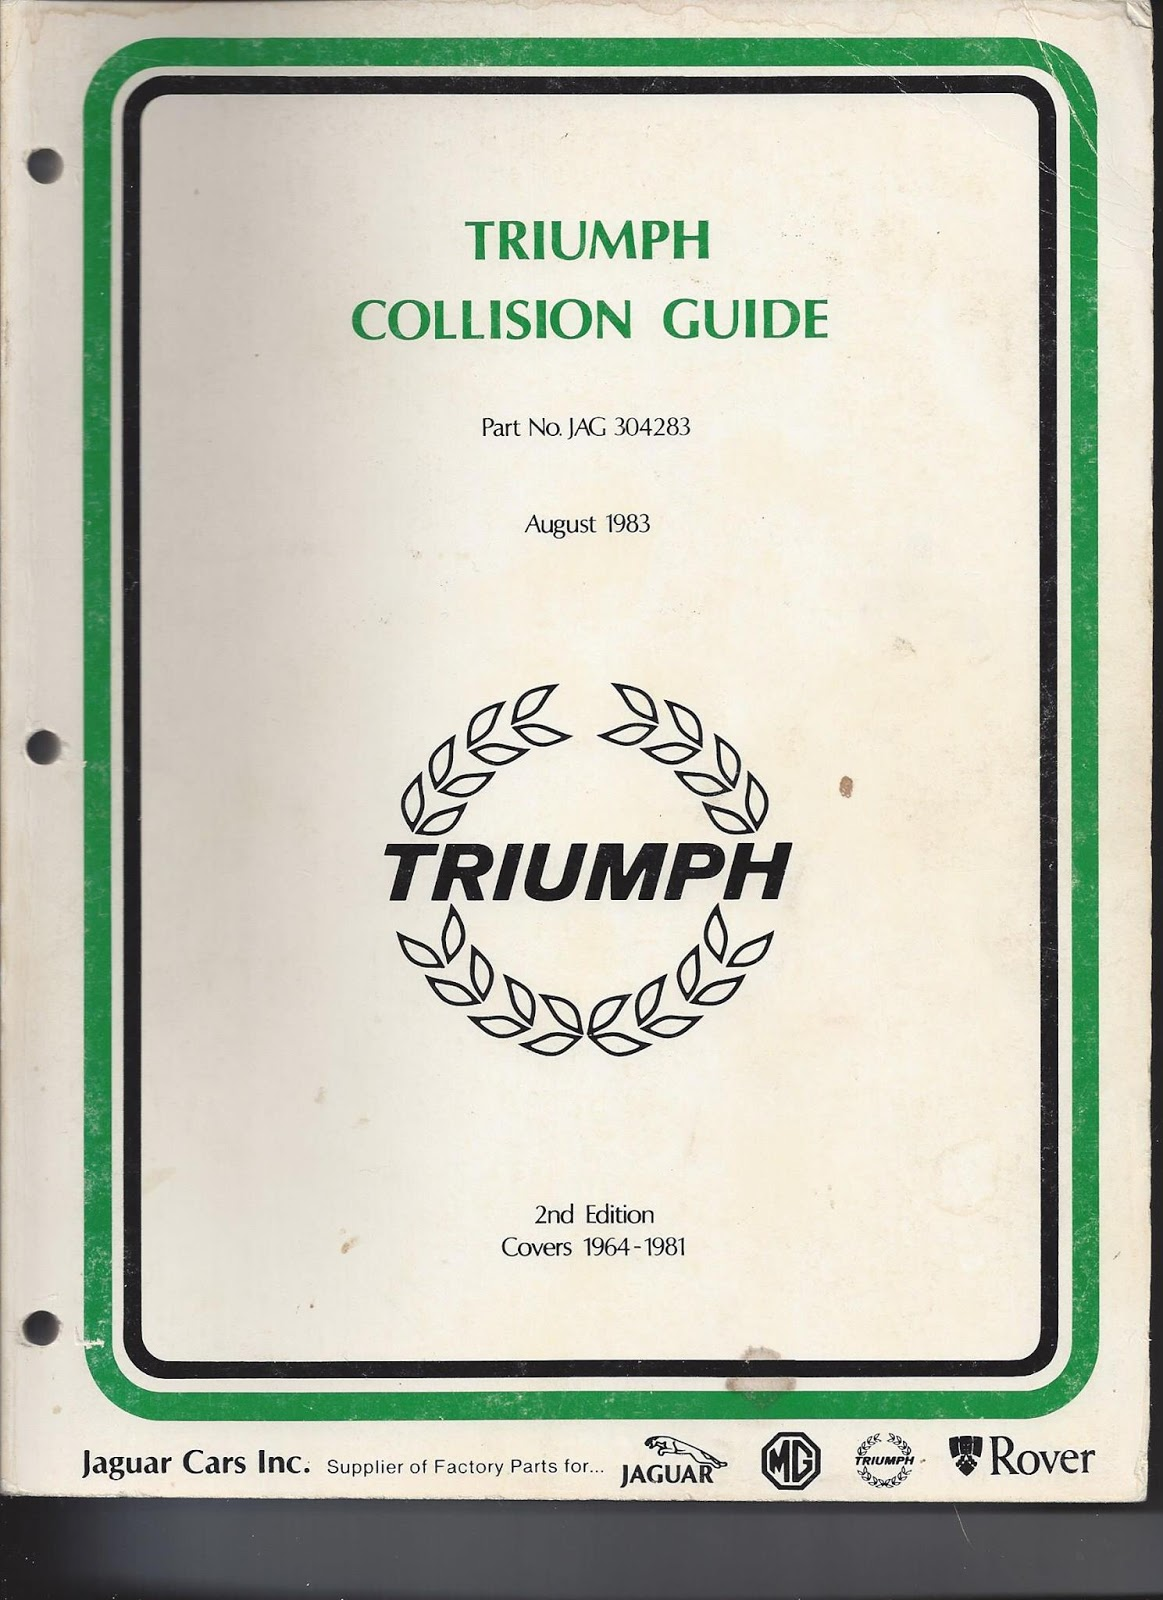 Triumph Collison Guide